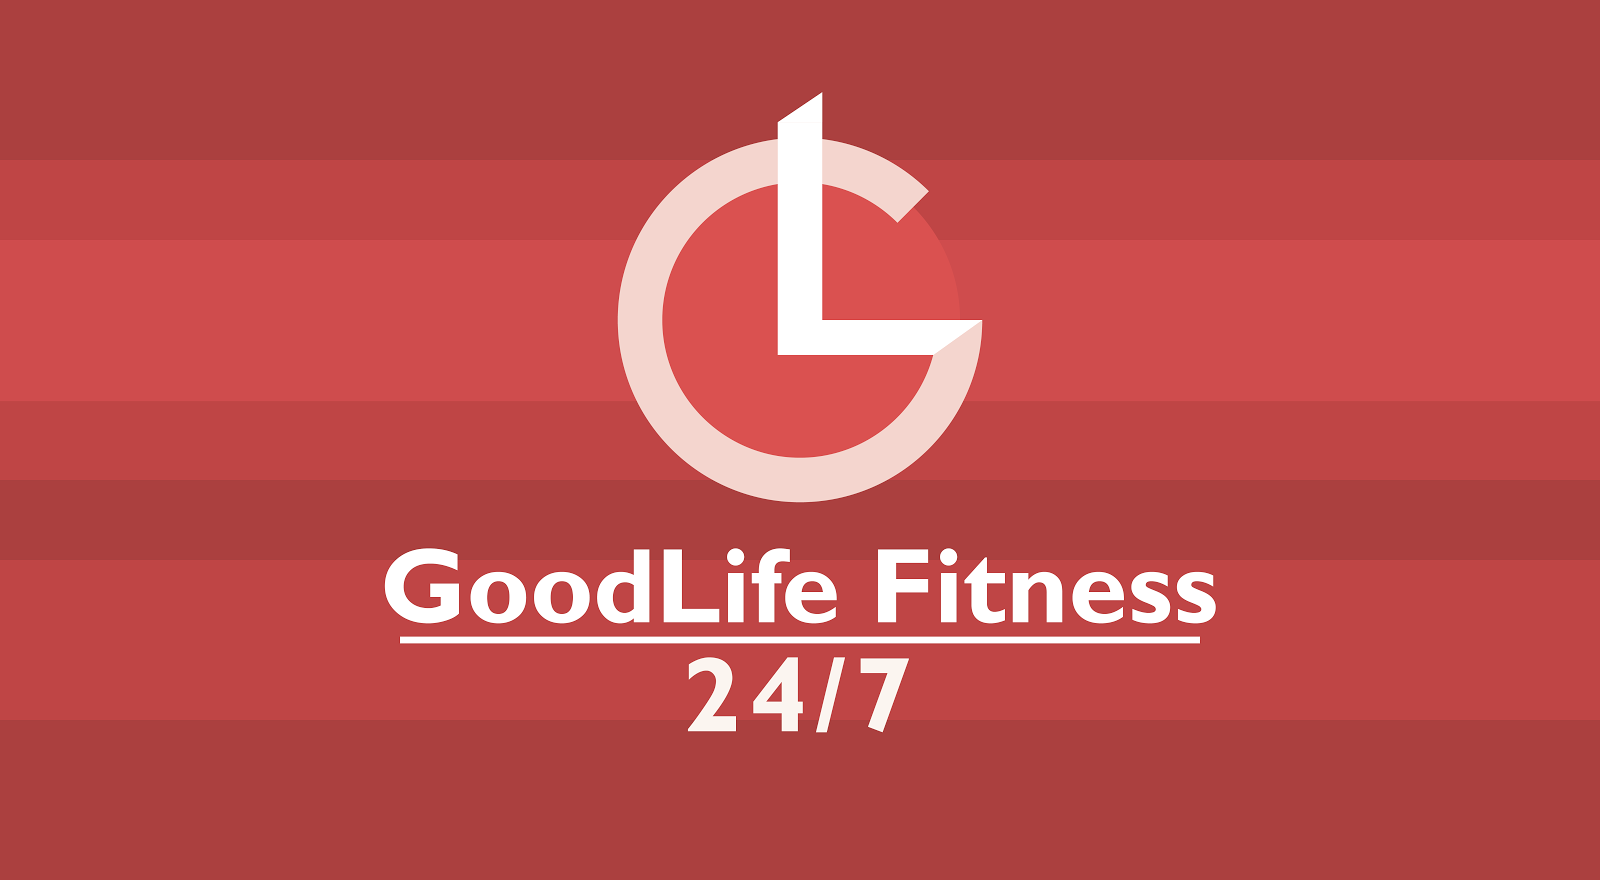 Leo Liu Illustration Design Goodlife Fitness 24 7 Logo